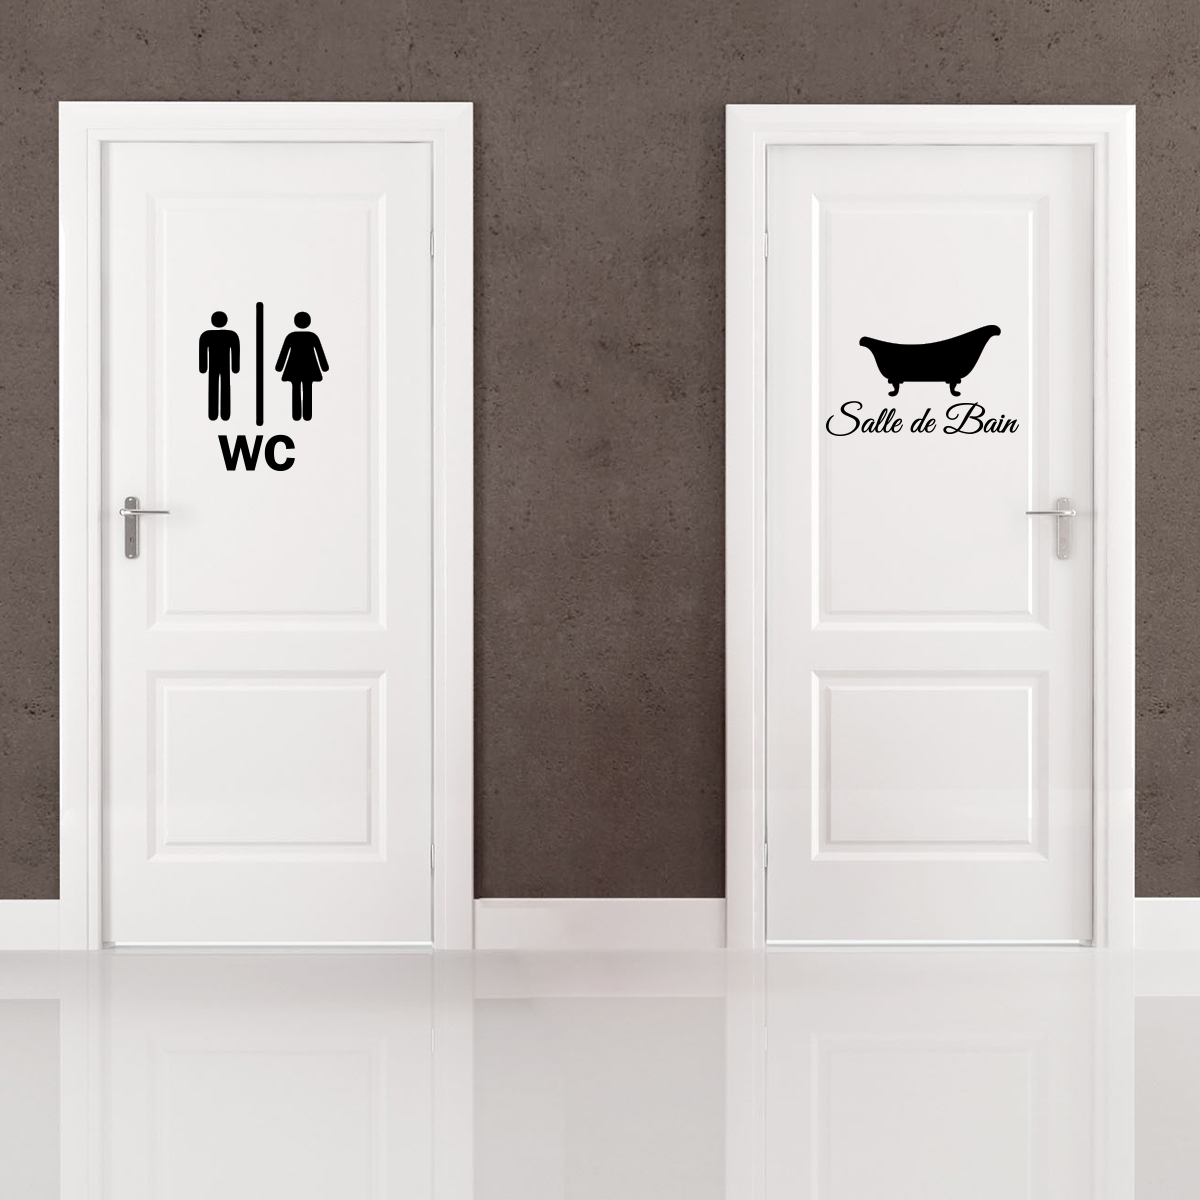 sticker porte salle de bain et wc stickers salle de bain. Black Bedroom Furniture Sets. Home Design Ideas